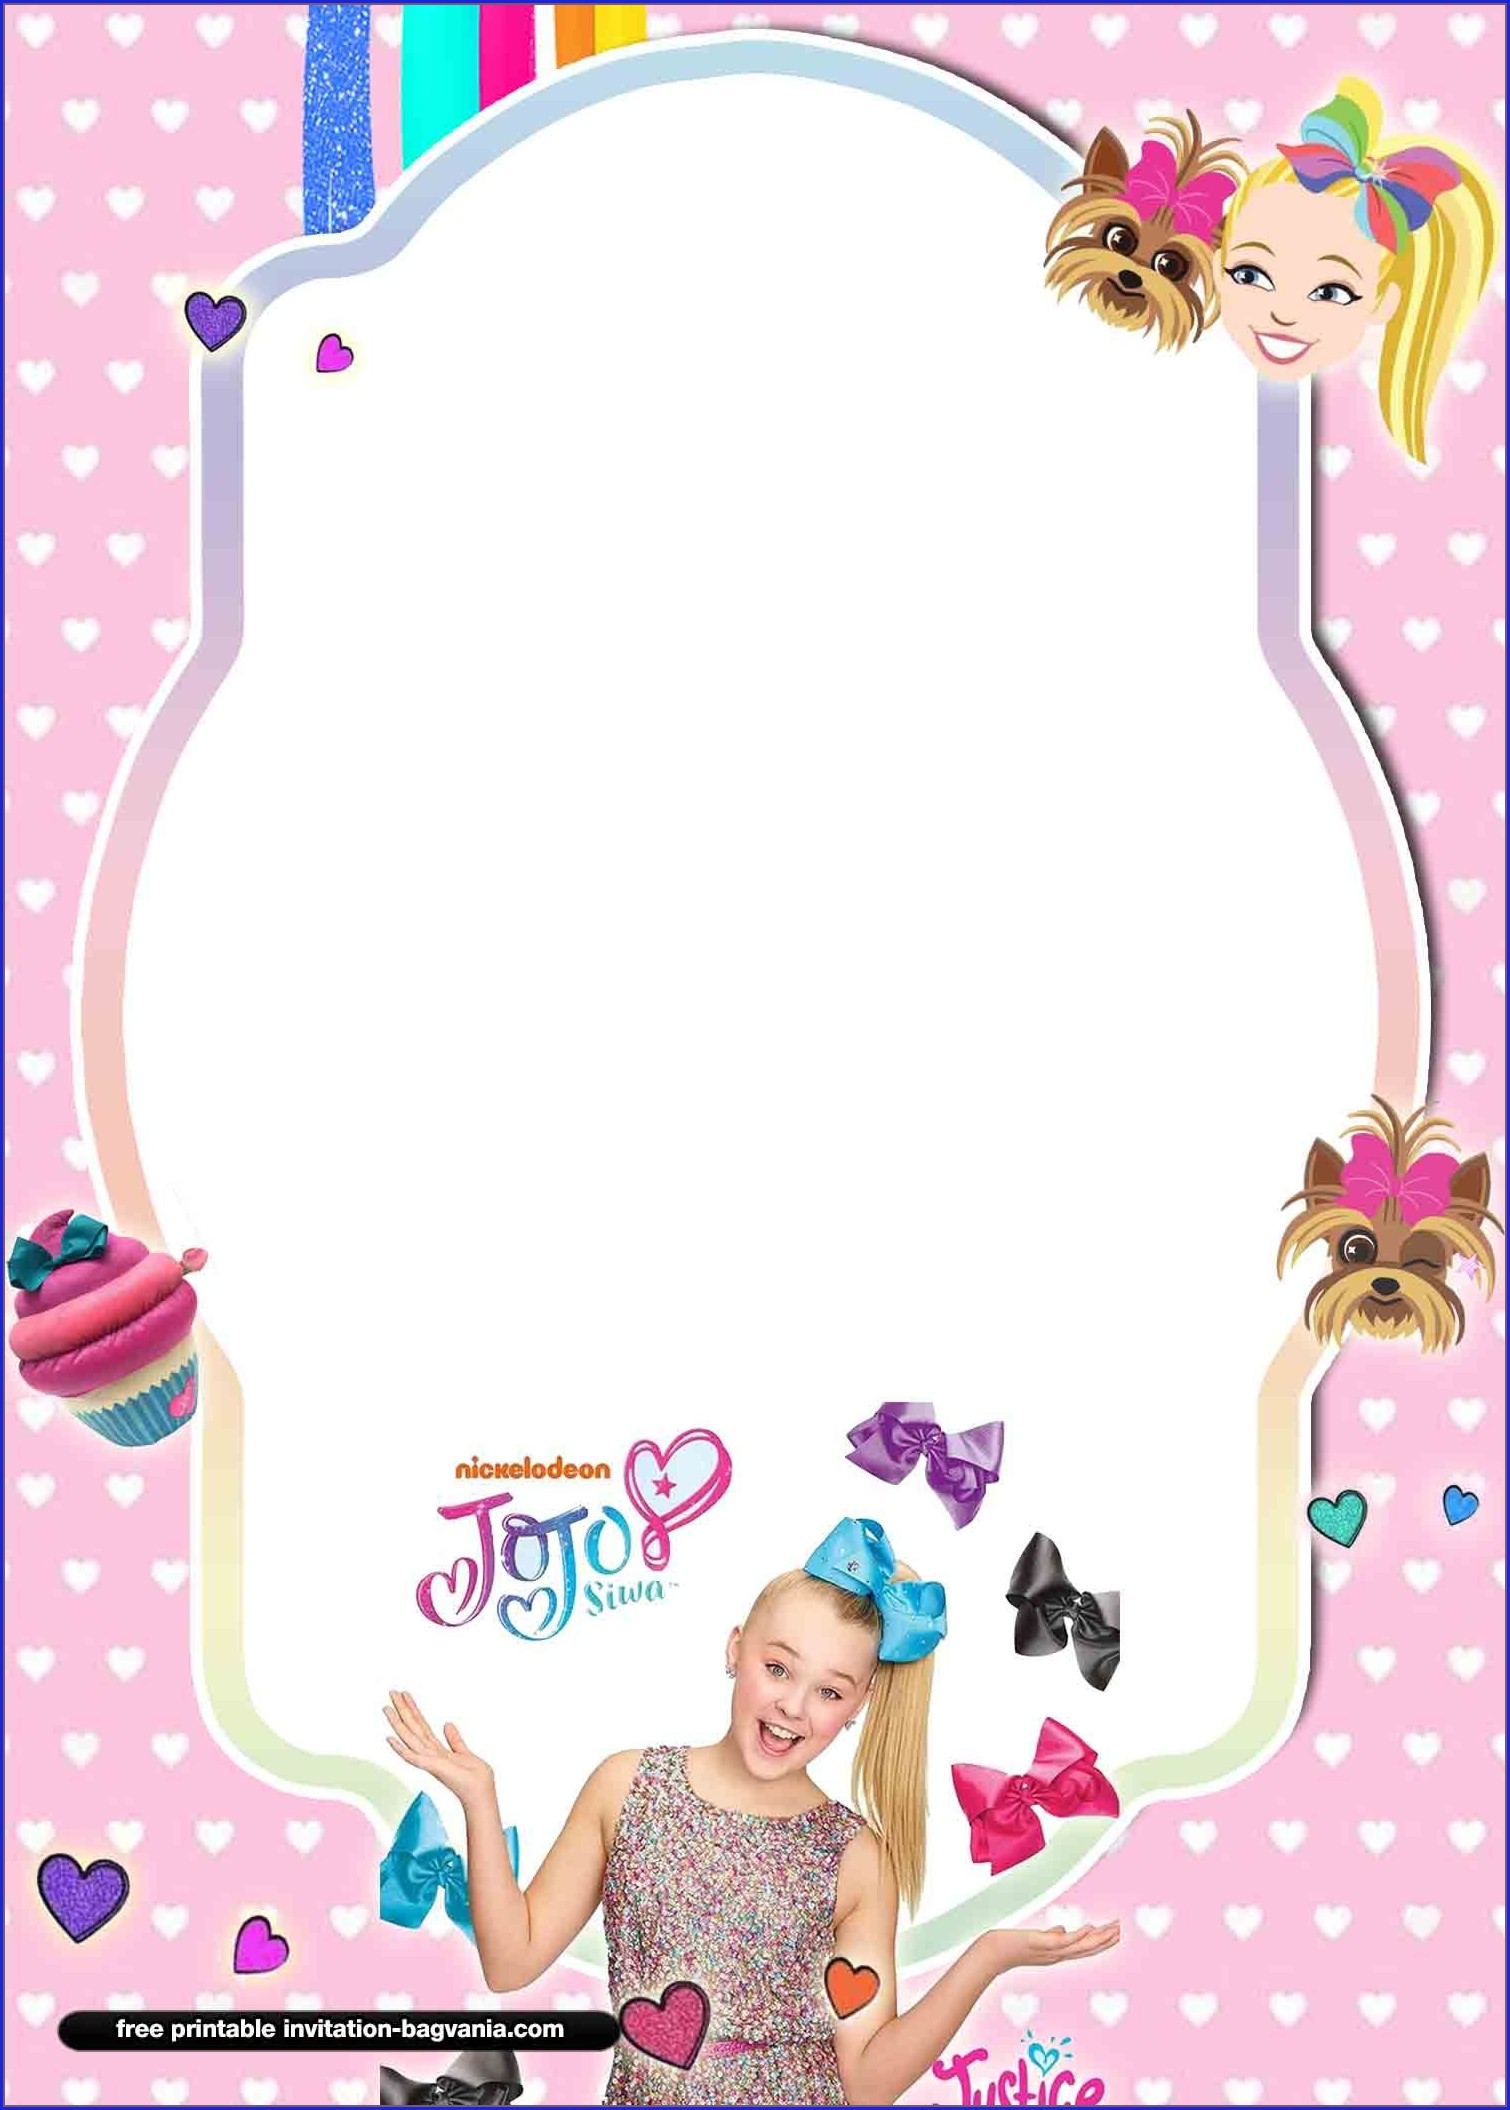 Jojo Siwa Invitations Free